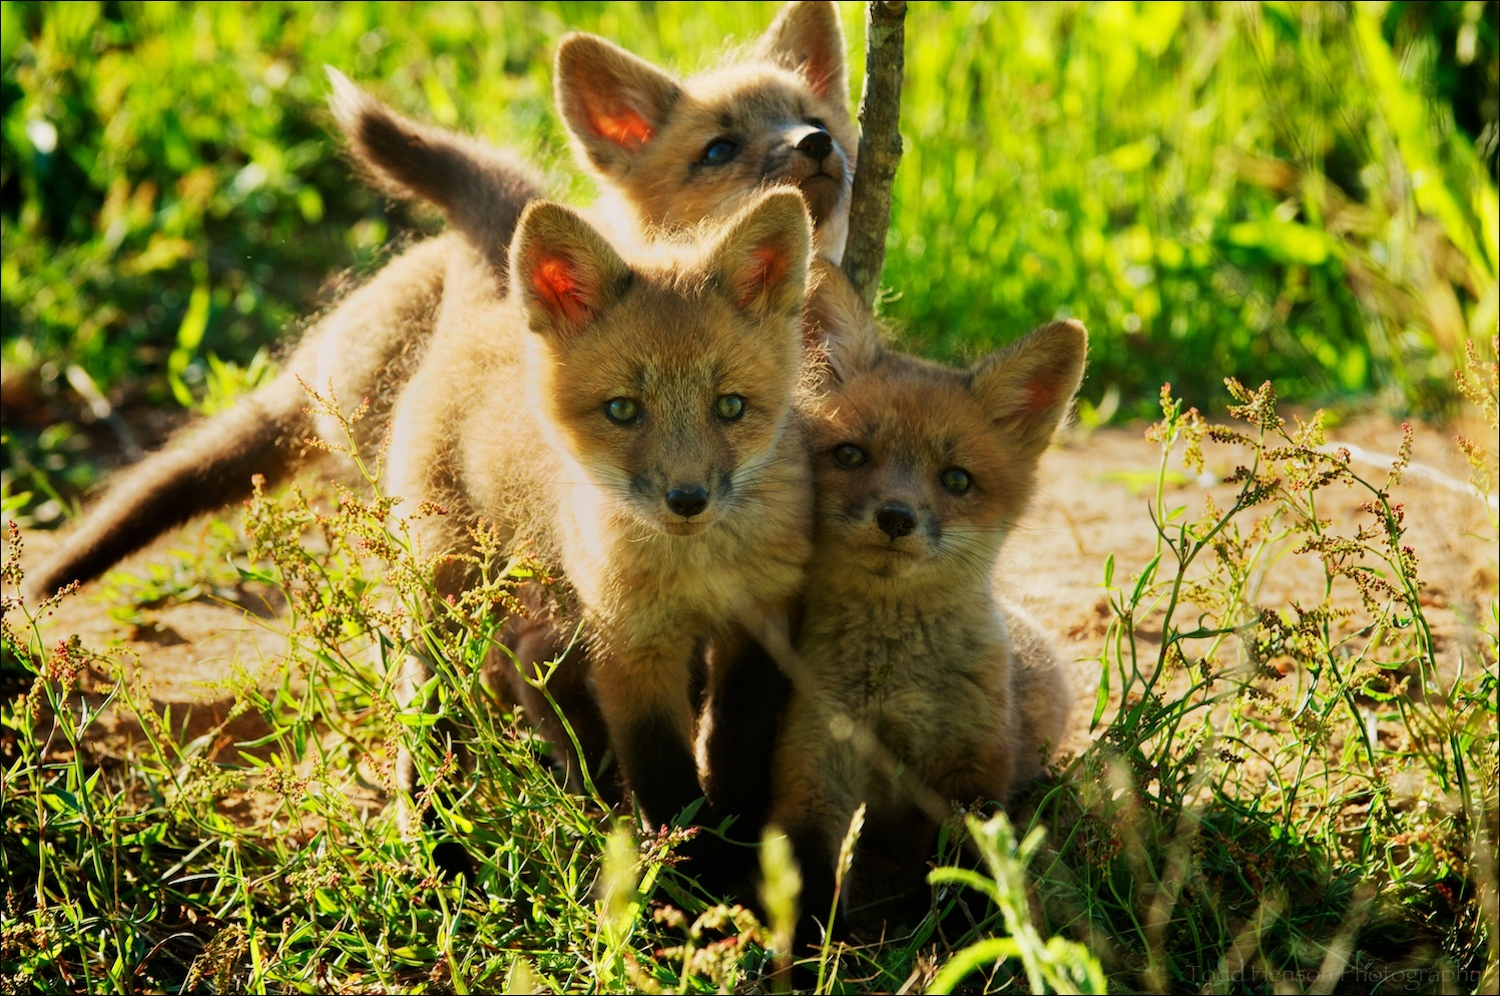 Red fox kit playing and watching in harsh late afternoon light